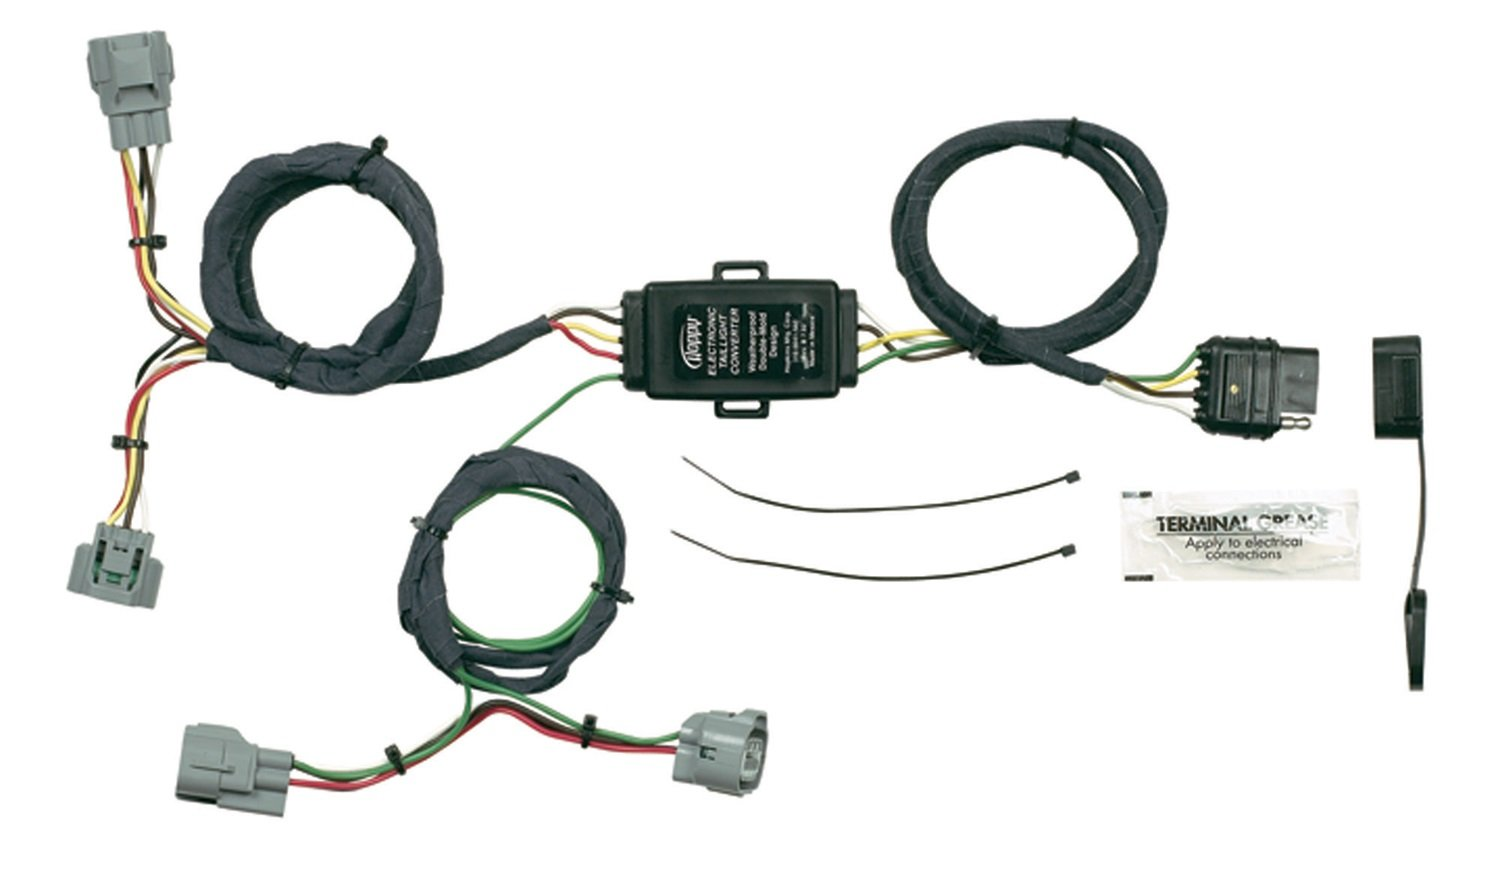 61J3Pn4wzzL._SL1500_ amazon com hopkins 43355 plug in simple vehicle wiring kit hopkins towing solutions - wire harness at n-0.co